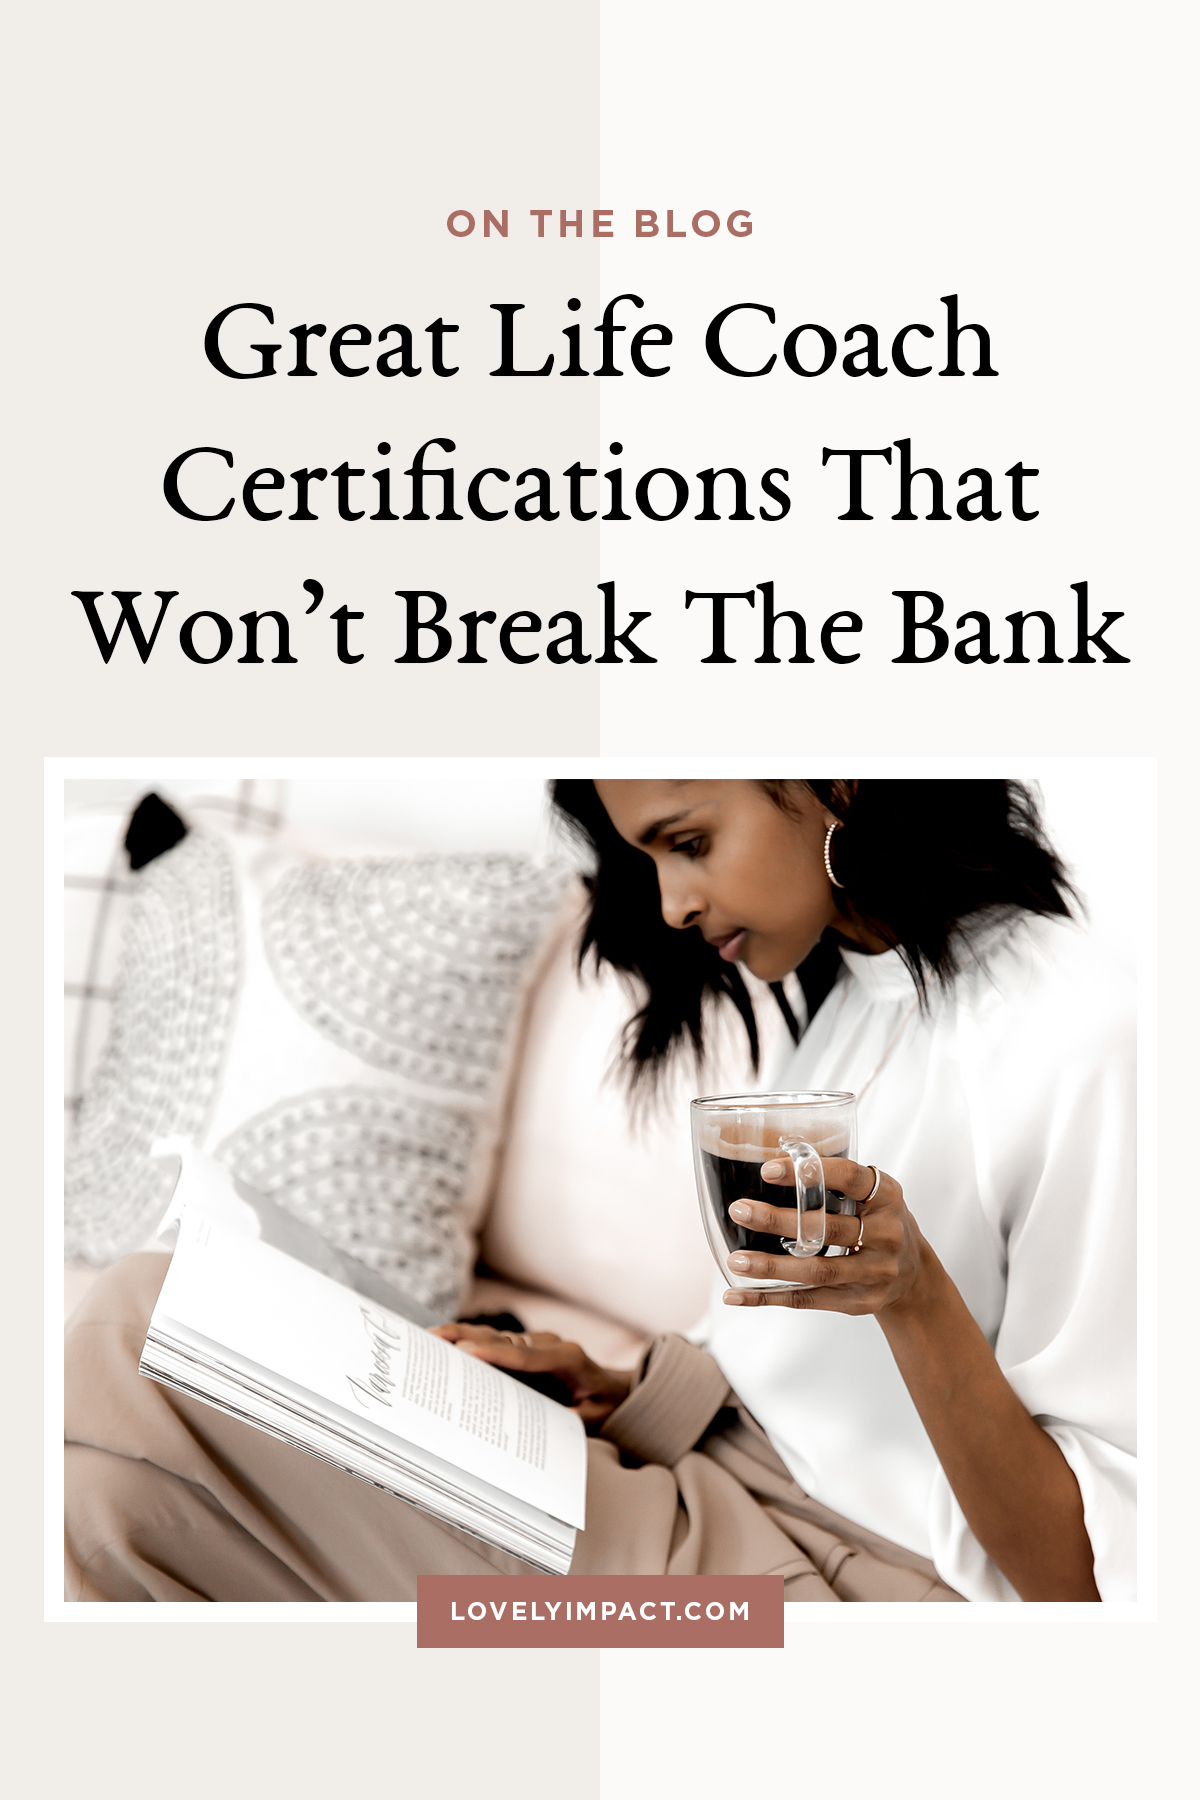 Great Life Coach Certifications That Won't Break The Bank